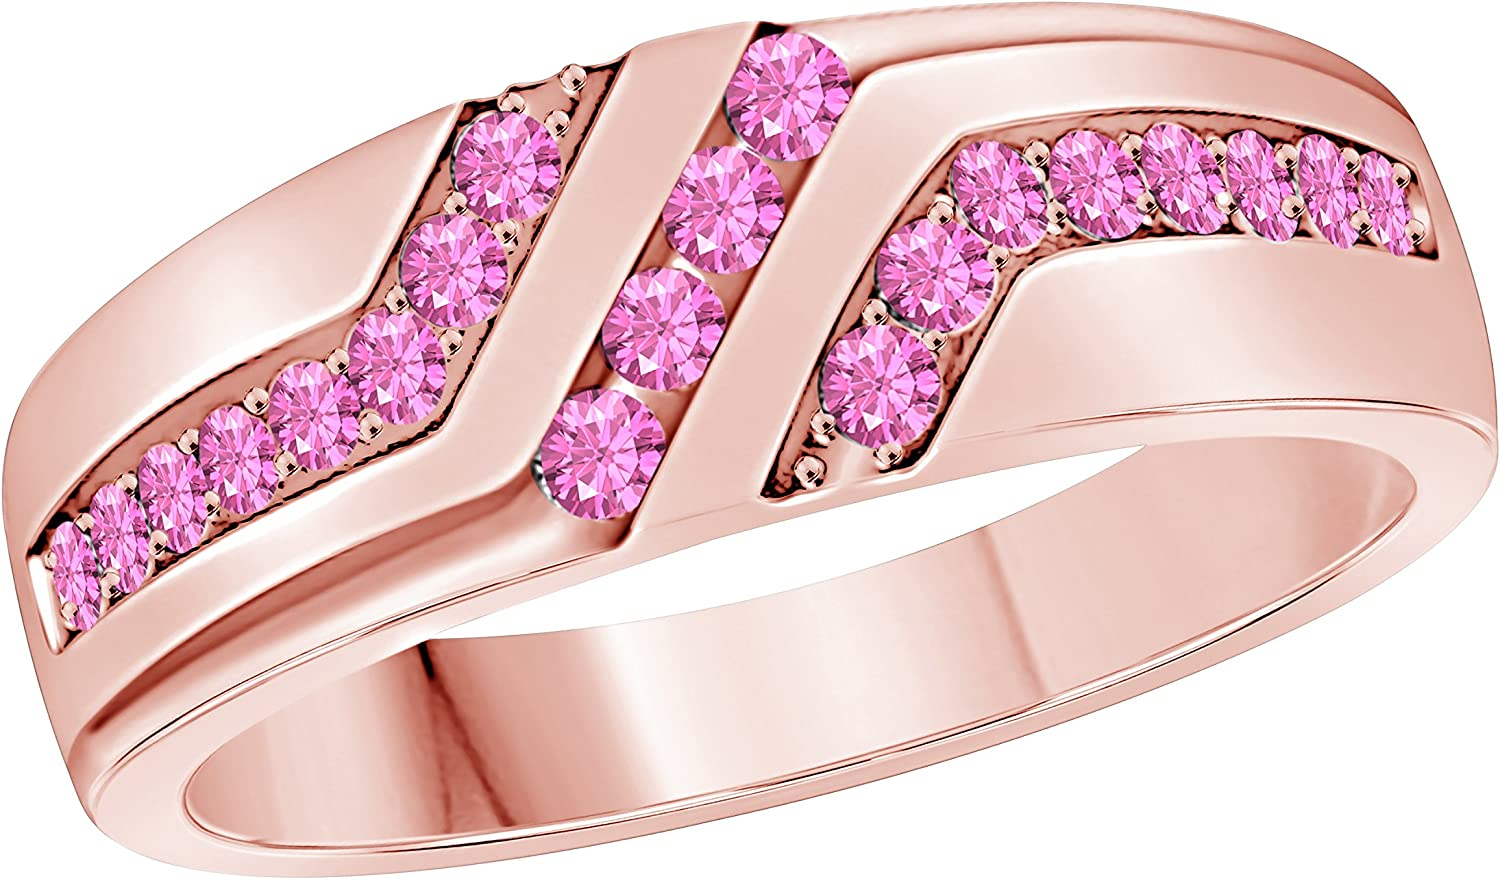 Gems and Jewels Mens Wedding Anniversary Band Ring in 14k Rose Gold Plated Pink Sapphire